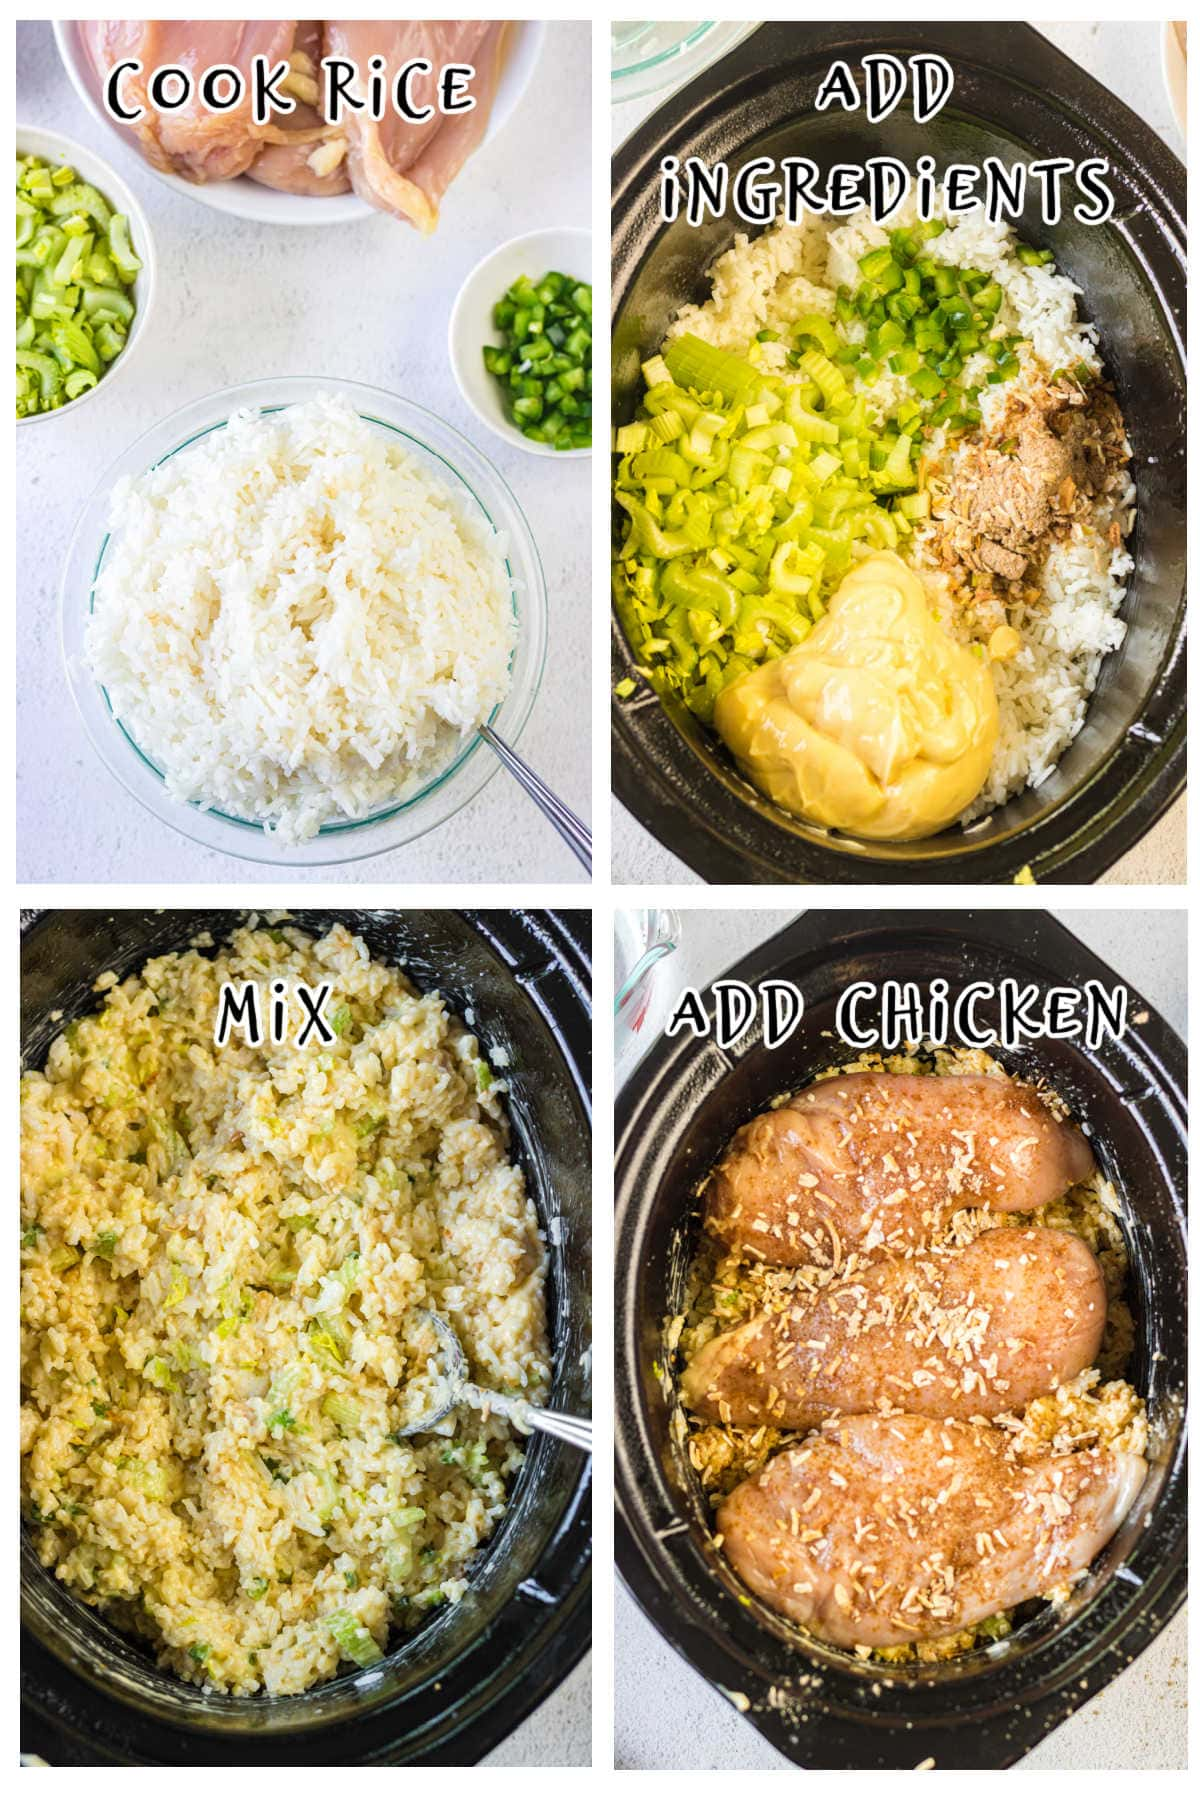 Step by step images showing how to make crockpot chicken and rice.